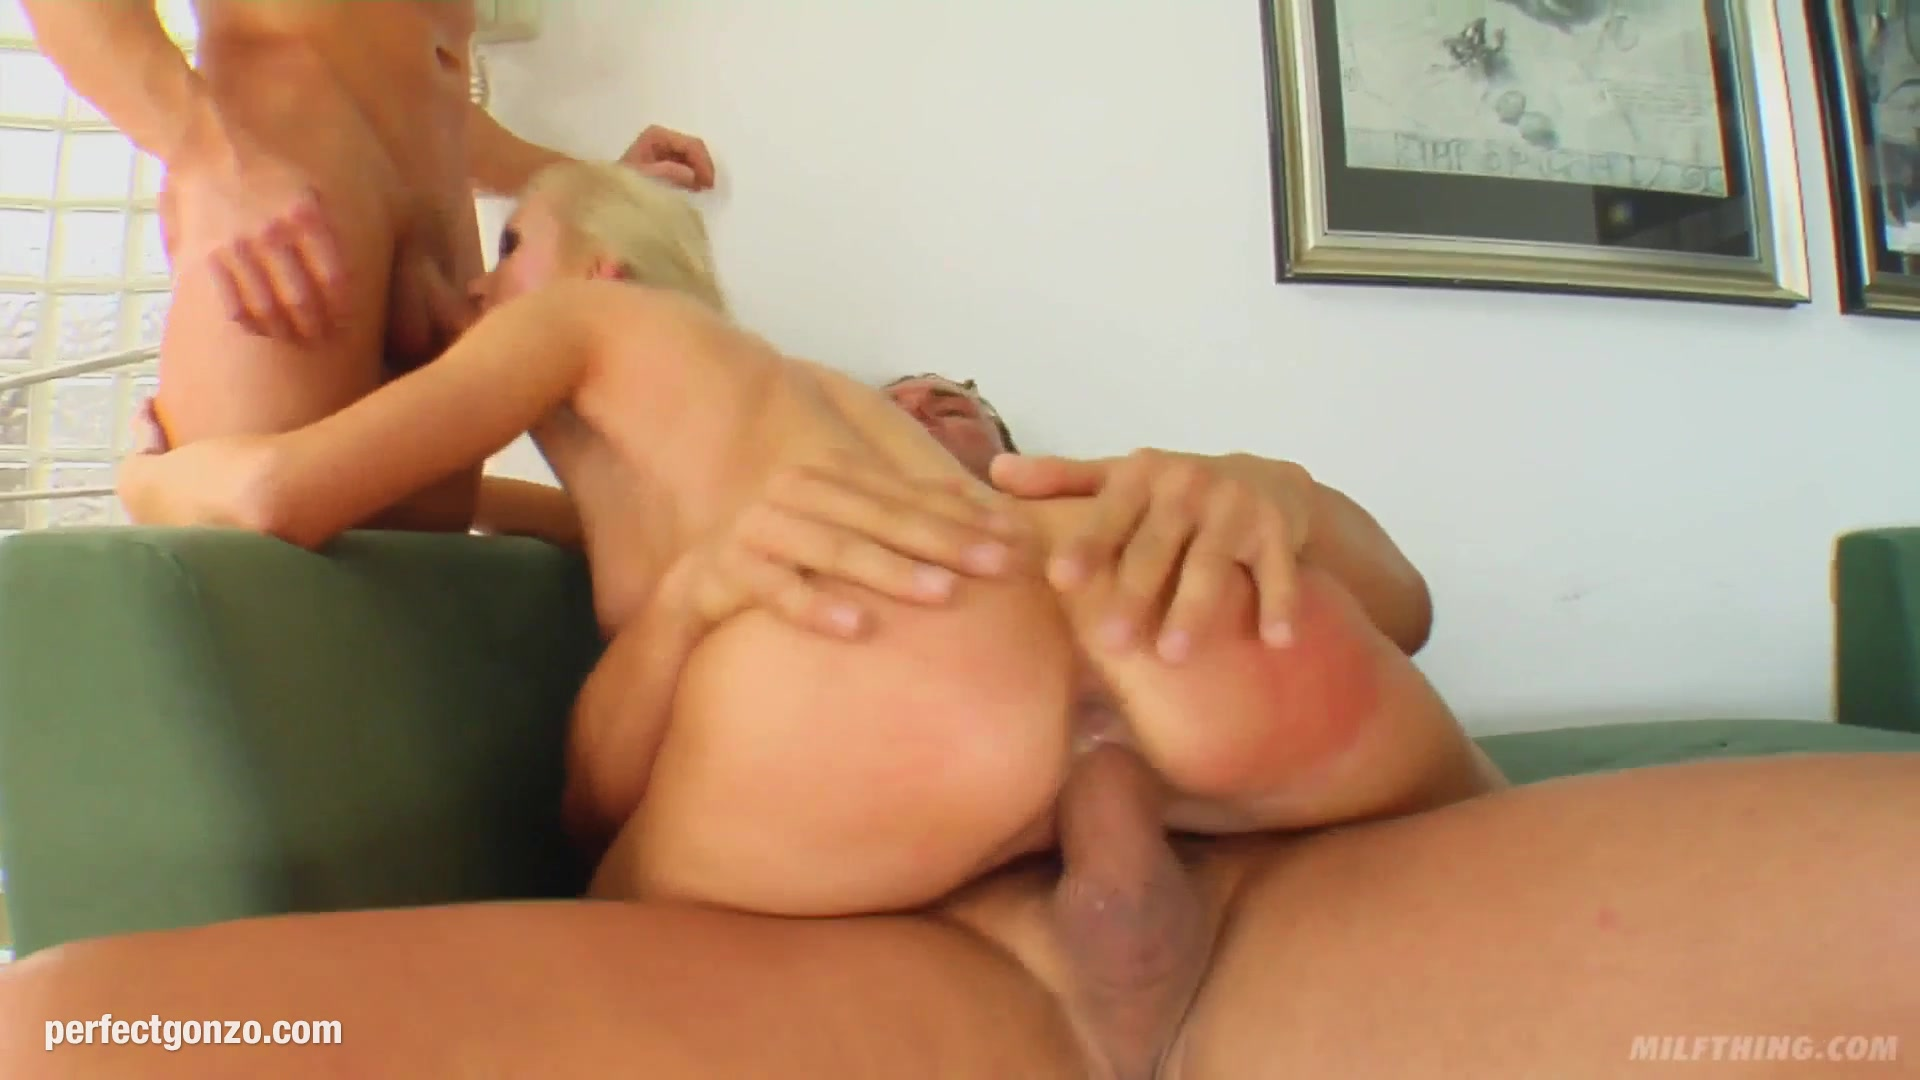 Milf Thing delivers Angelina Winter mature milf gonzo porn scene